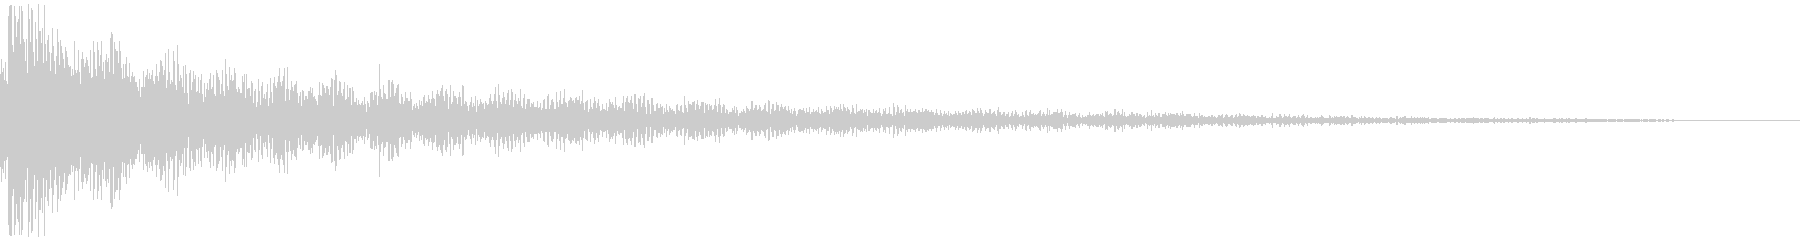 Go-N (Metal Bound Sound Sound in the Local Bass)'s unreproduced waveform